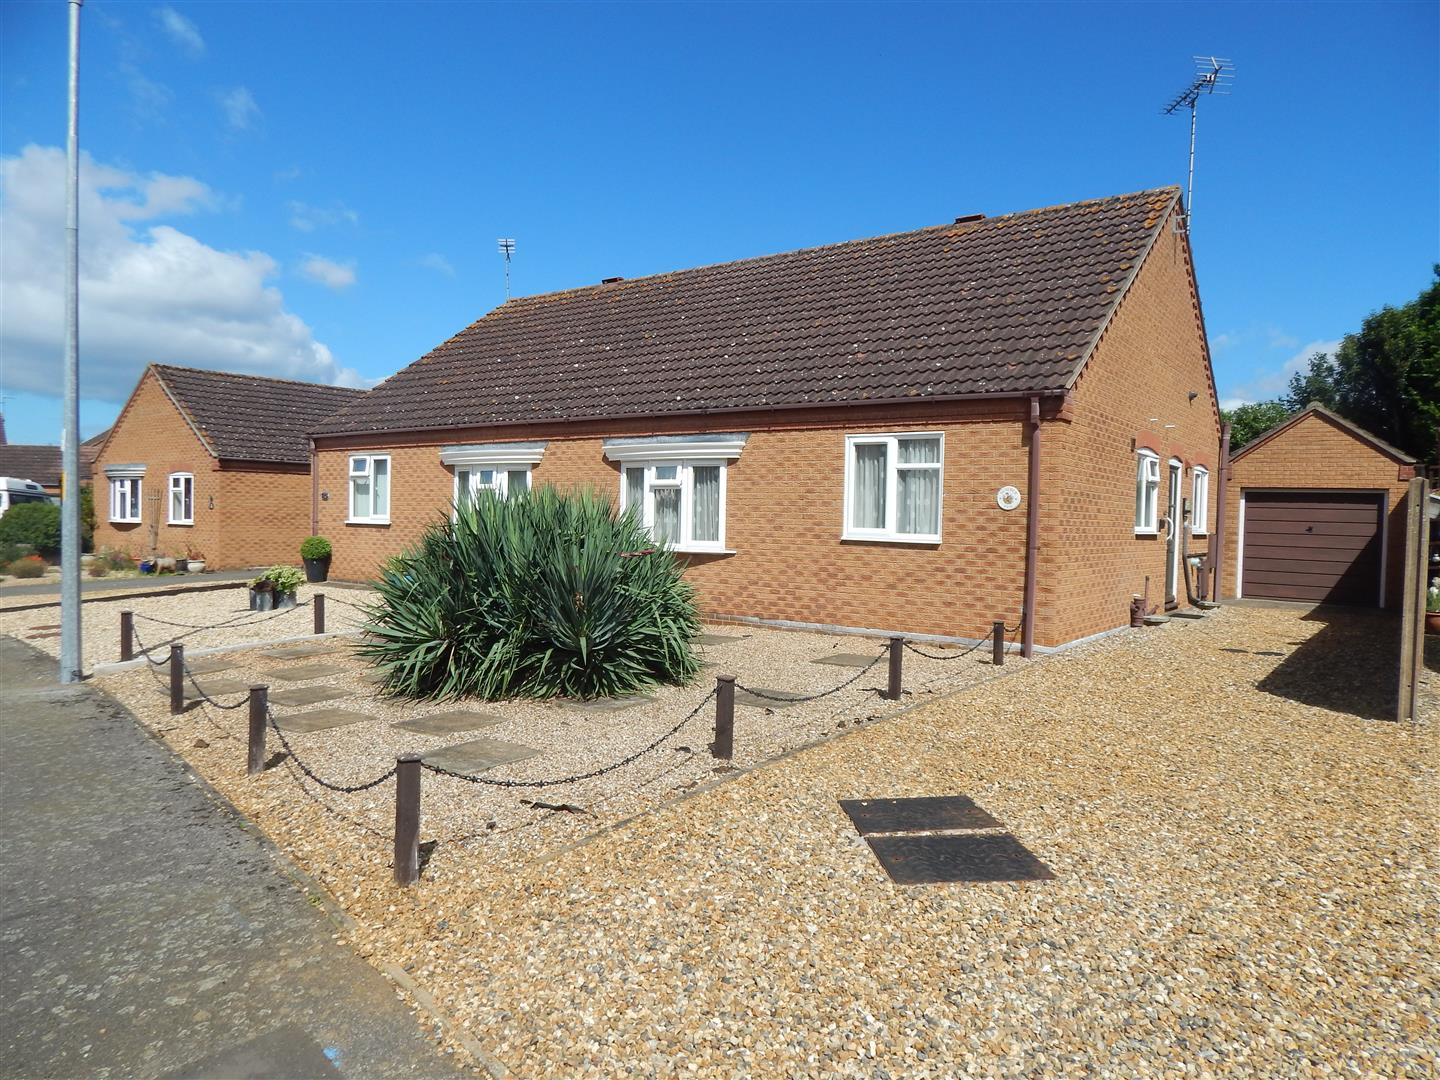 2 bed semi-detached bungalow for sale in Wiclewood Way, King's Lynn - Property Image 1